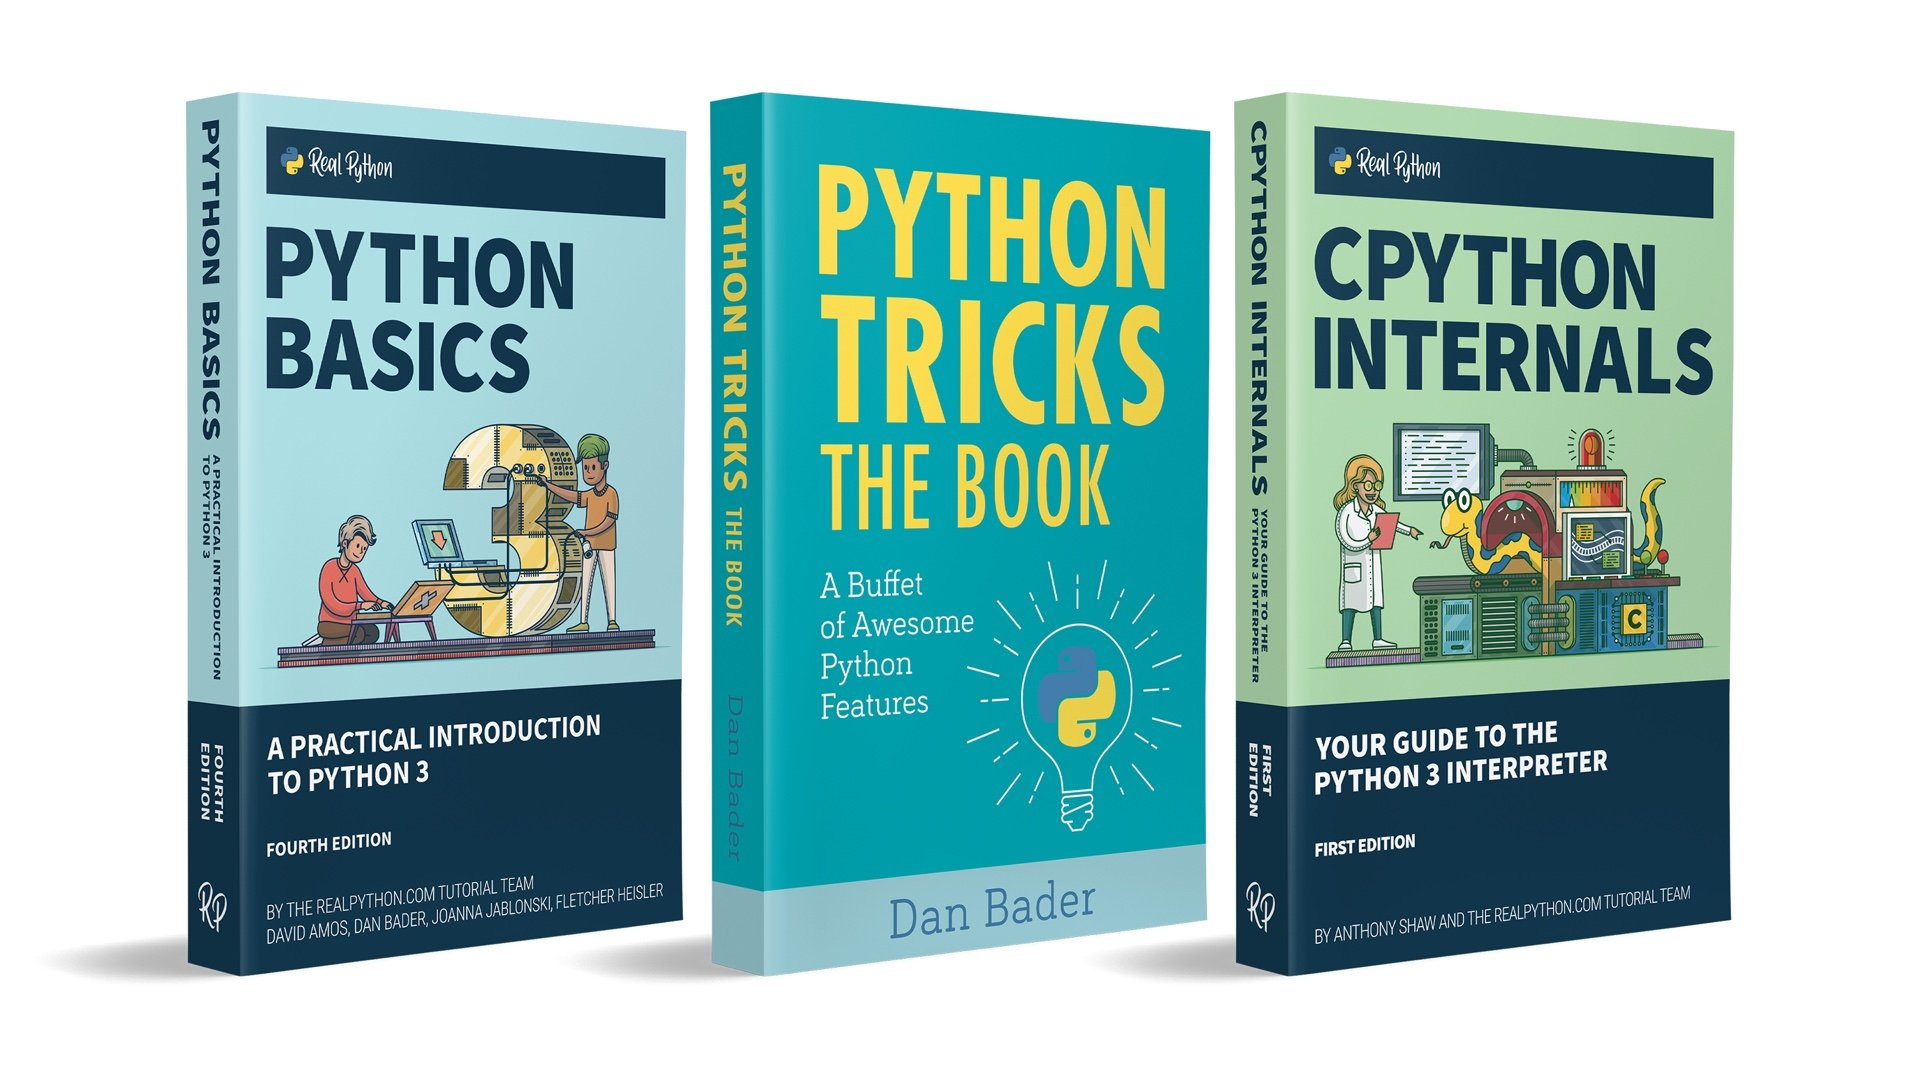 Python Books published by Real Python